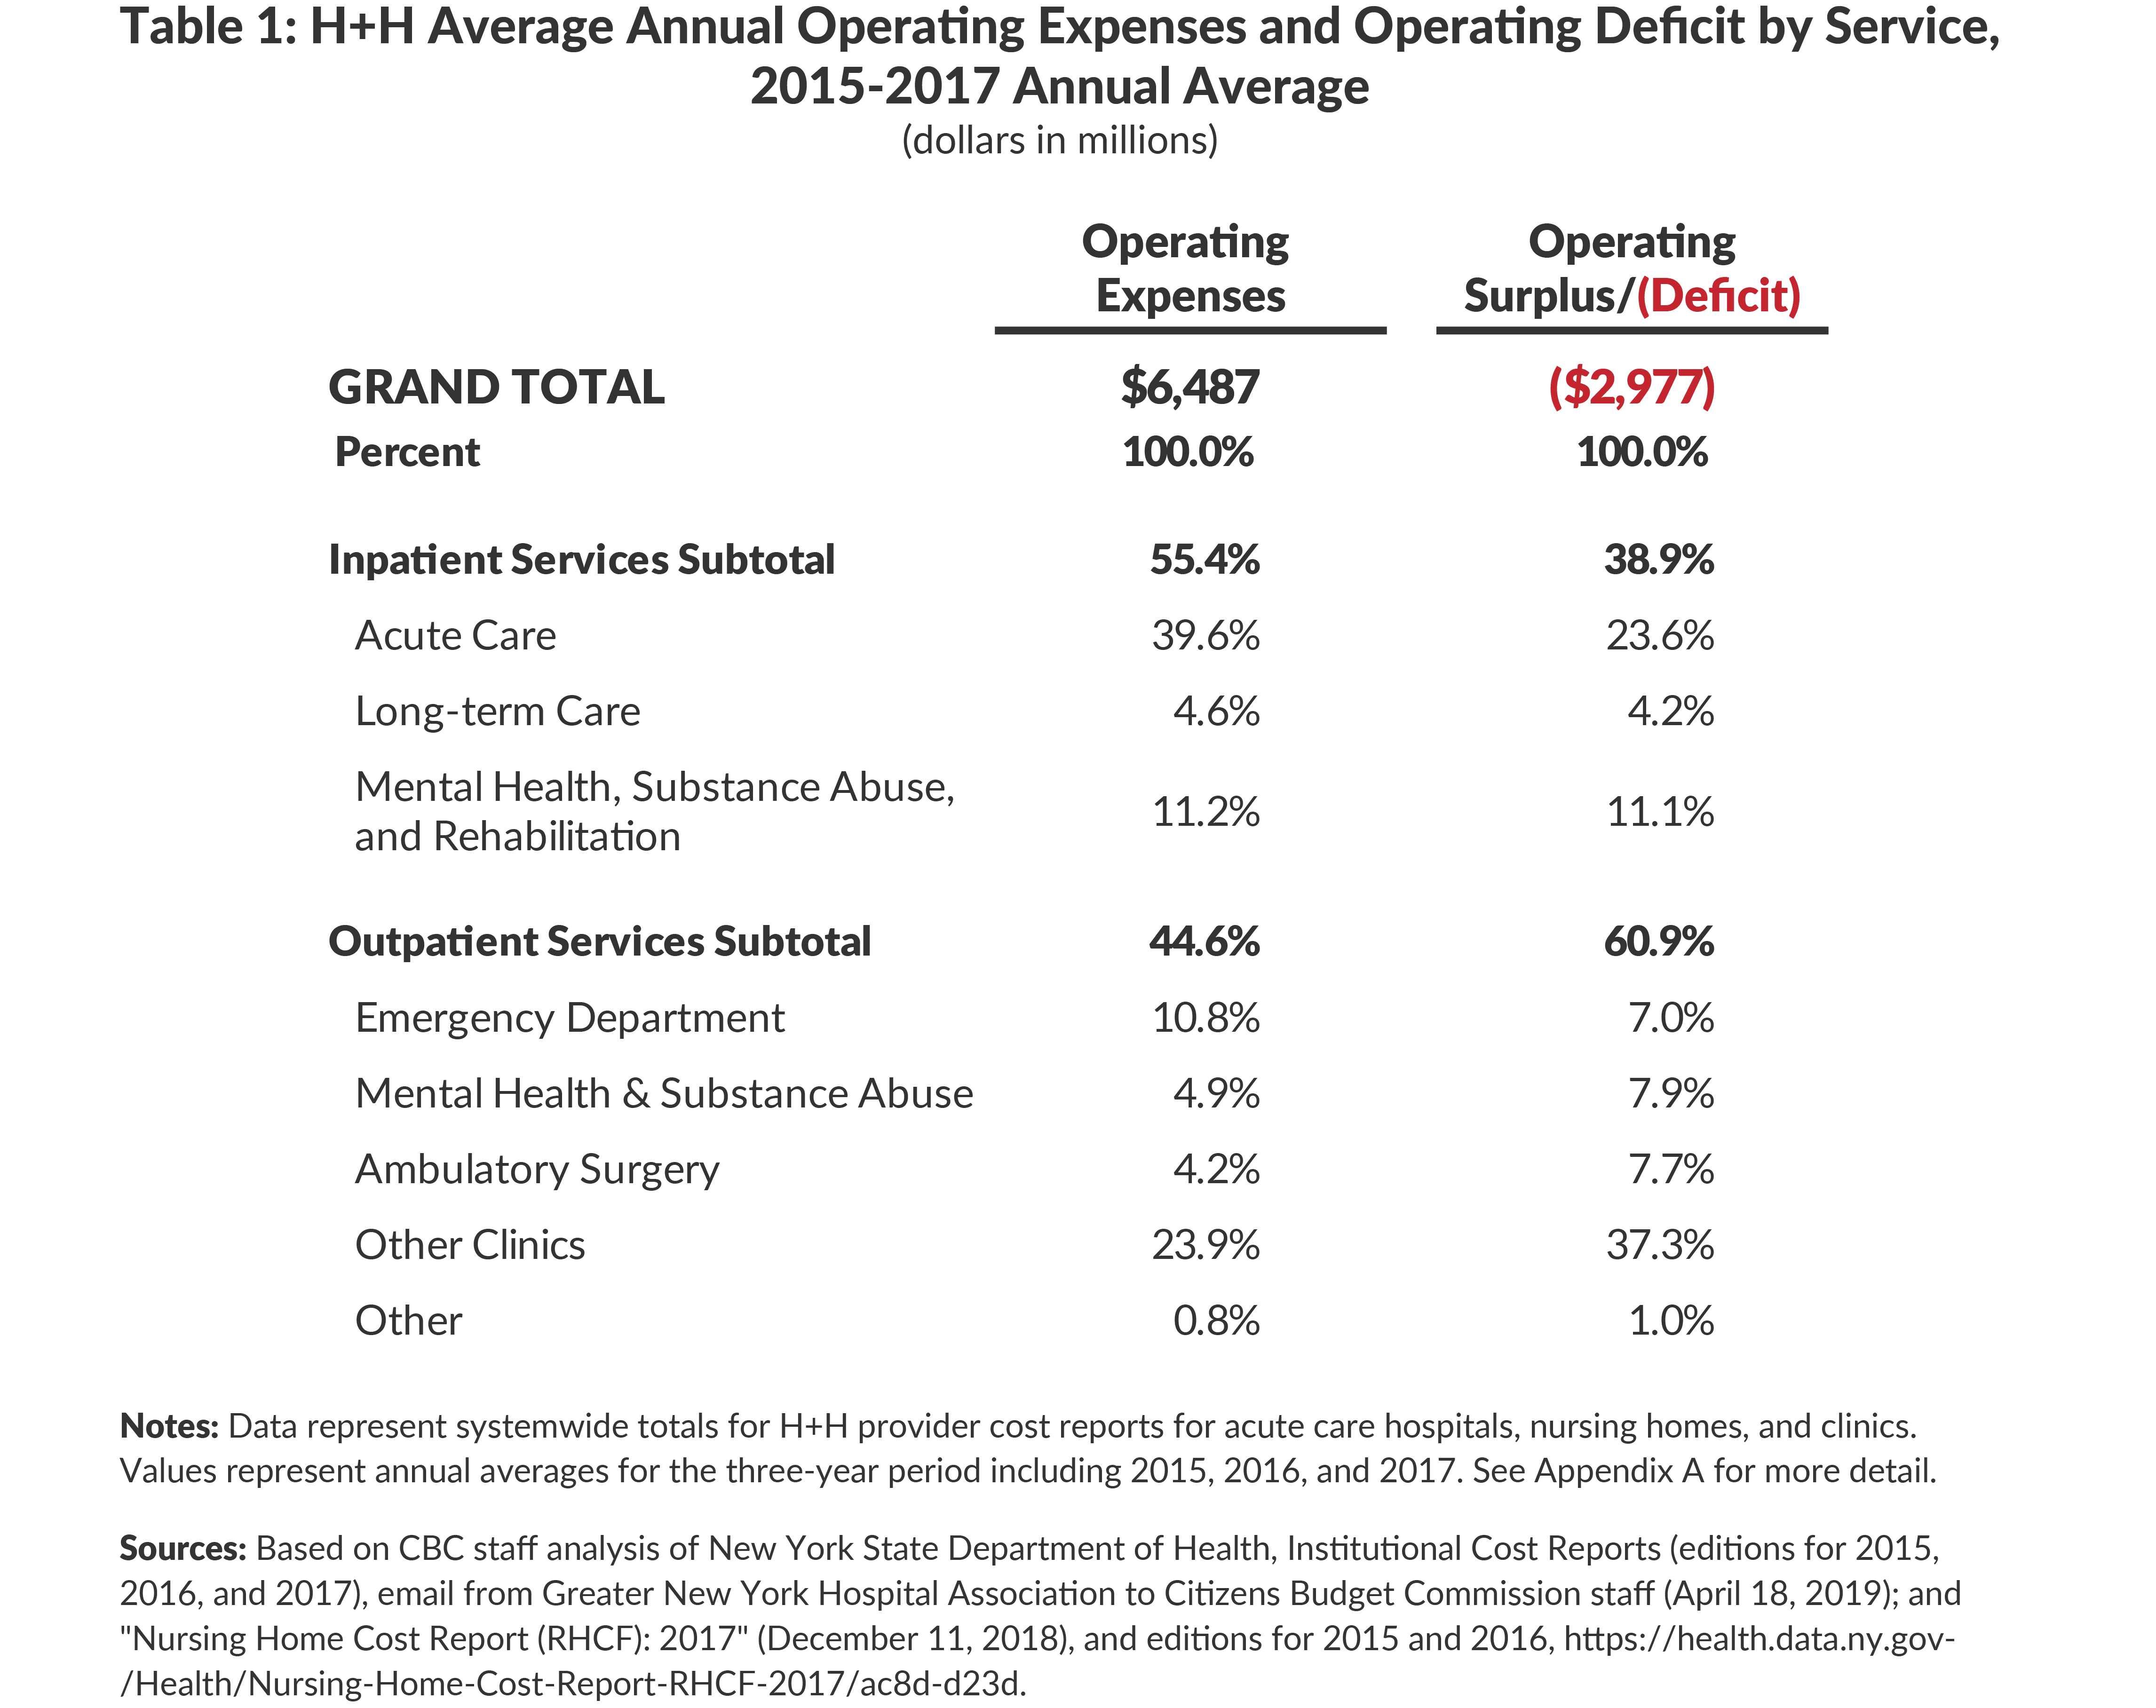 Table 1: H+H Average Annual Operating Expenses and Operating Deficit by Service,2015-2017 Annual Average